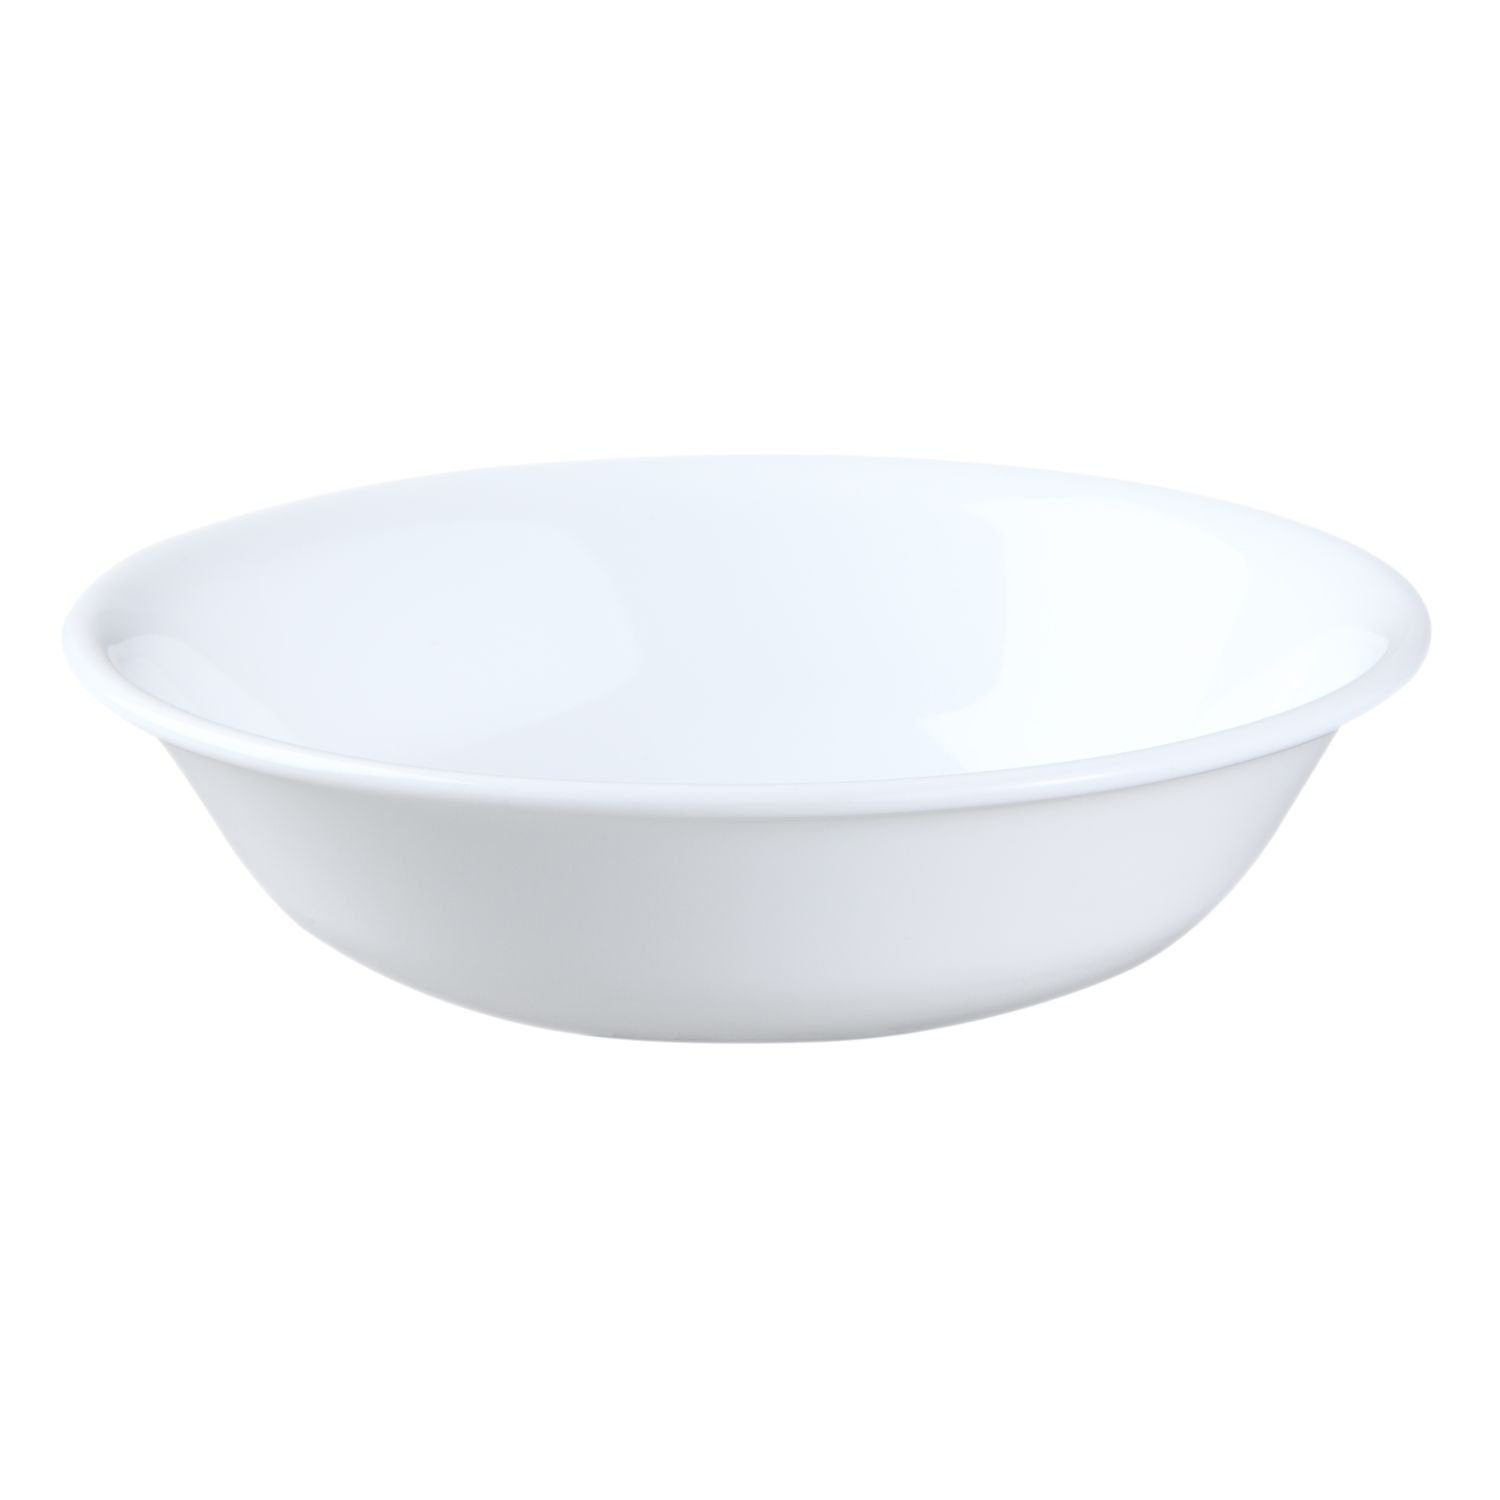 Corelle Winter Frost White Dessert Bowls 10 Oz (Pack of 6) 6003899